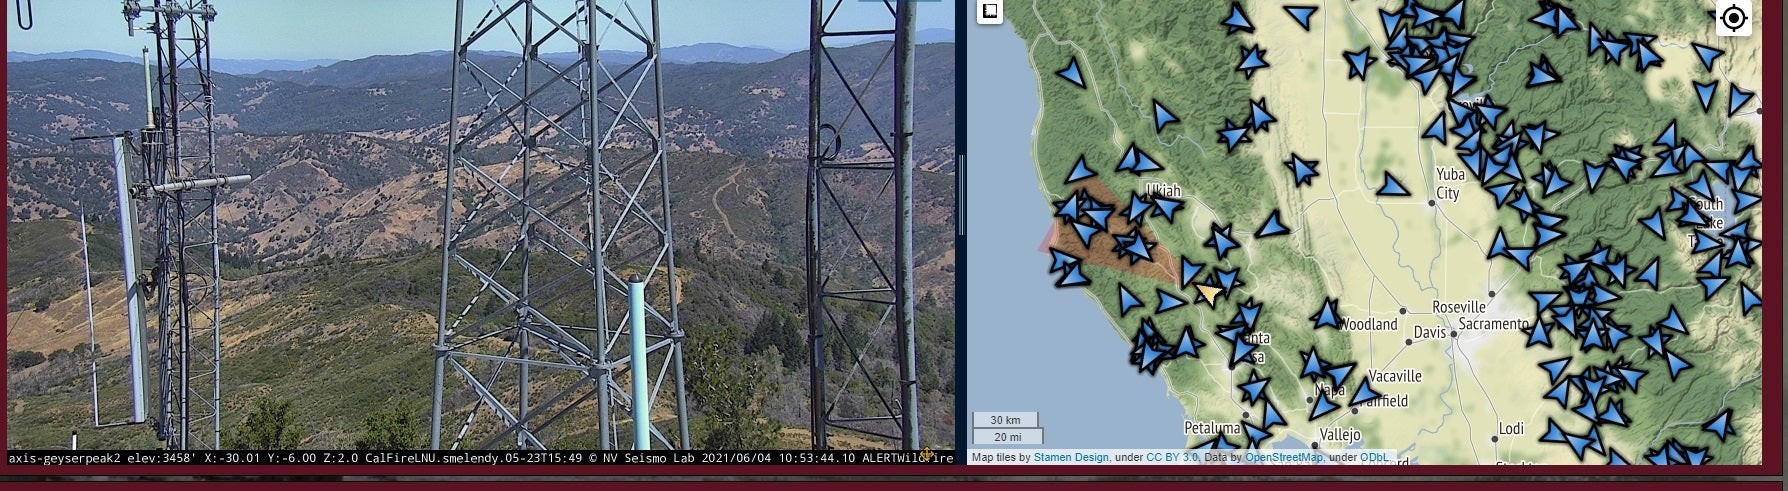 ALERTWildfire camera positioned to view the Geysers area of Sonoma County mounted on an existing utility tower and map of its location.